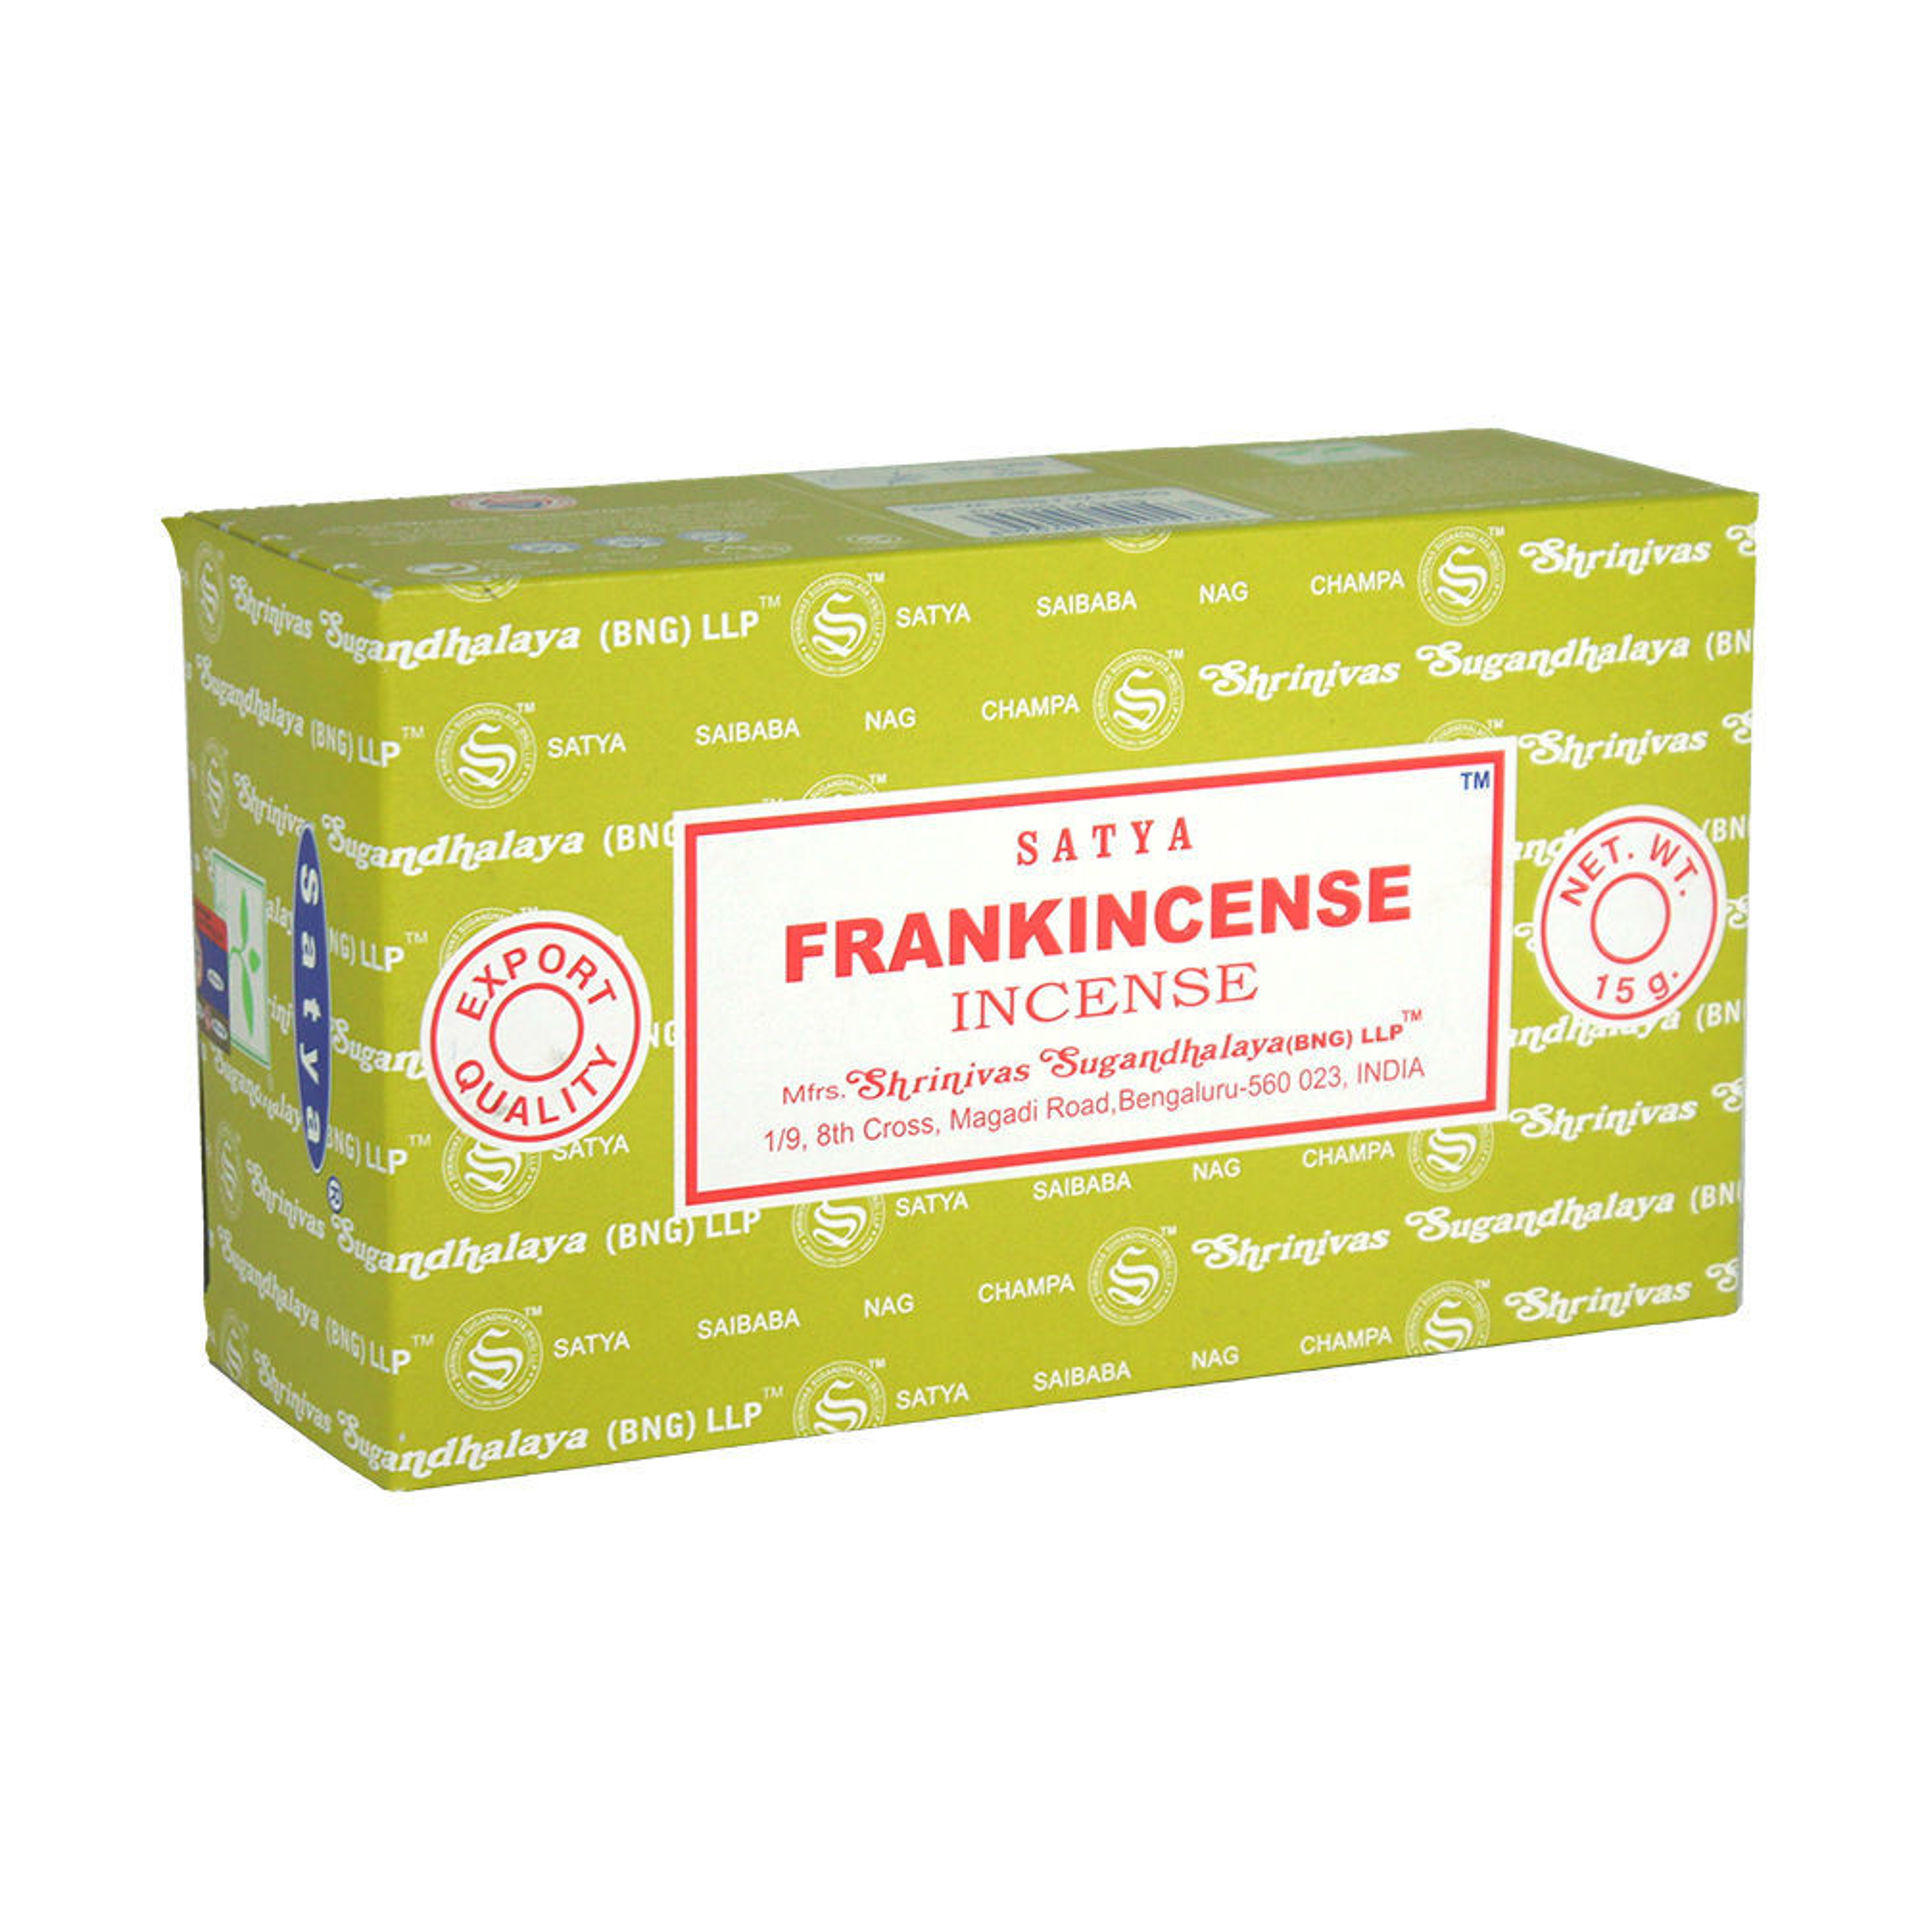 Picture of Frankincense Incense - 15 g (12-Pack)